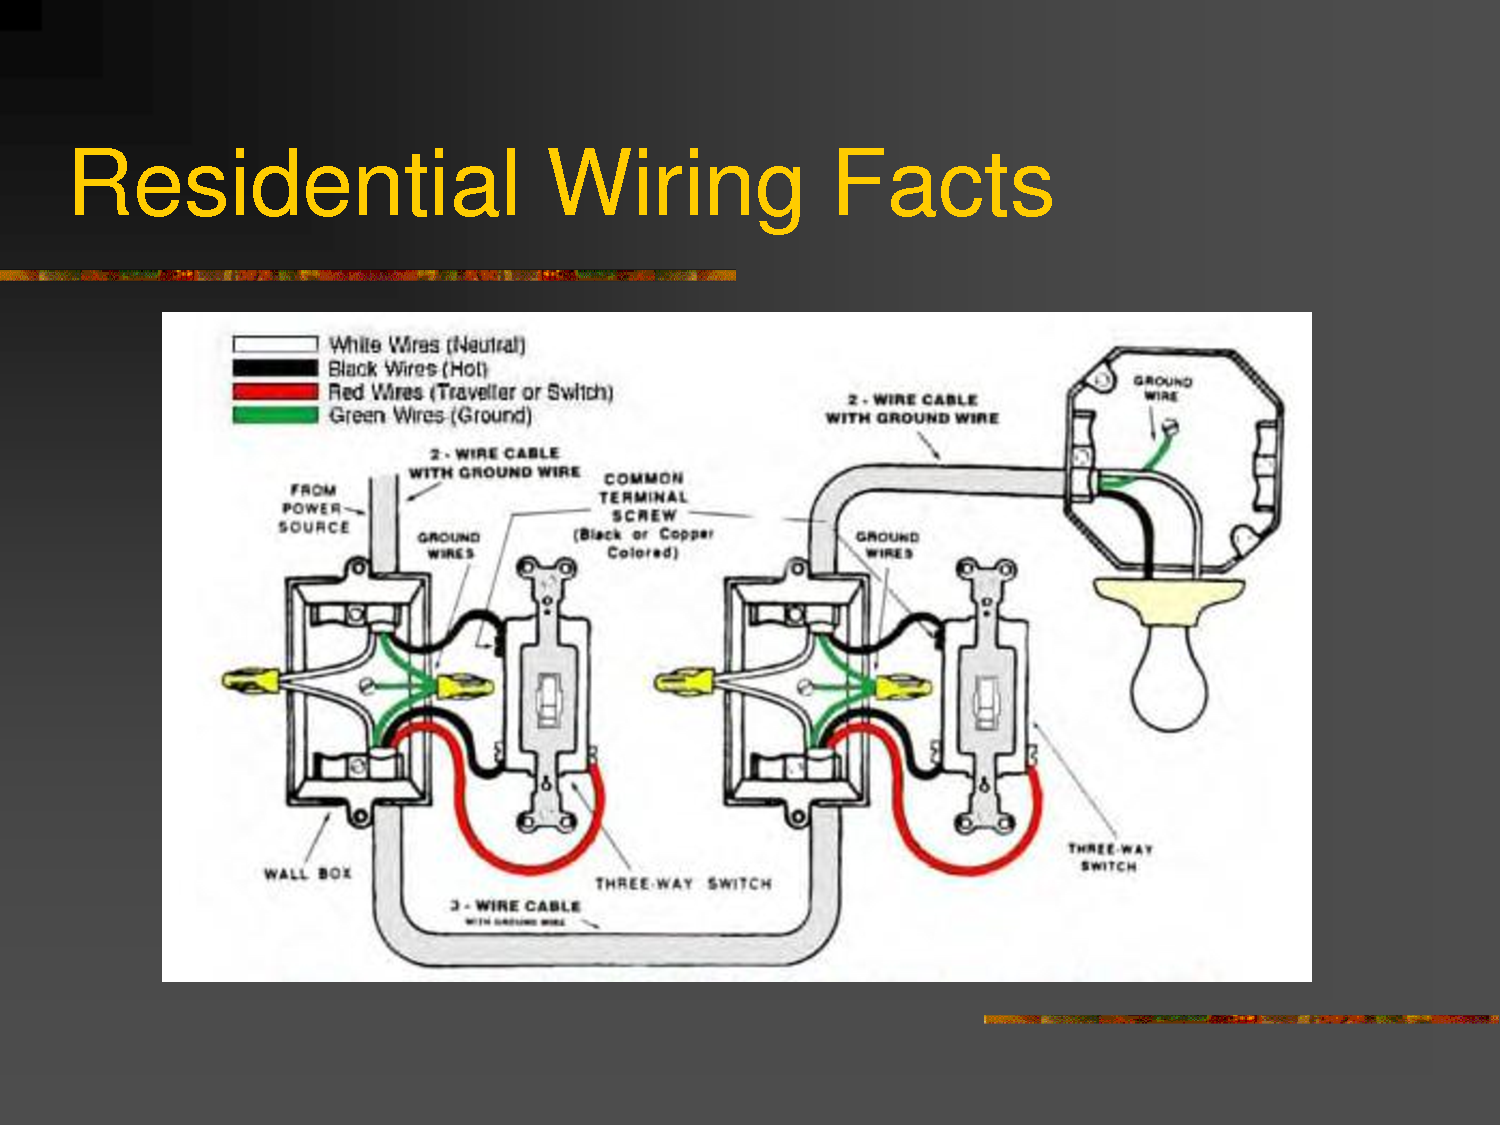 17 Best ideas about Residential Wiring – Residential Wiring Diagrams Your Home